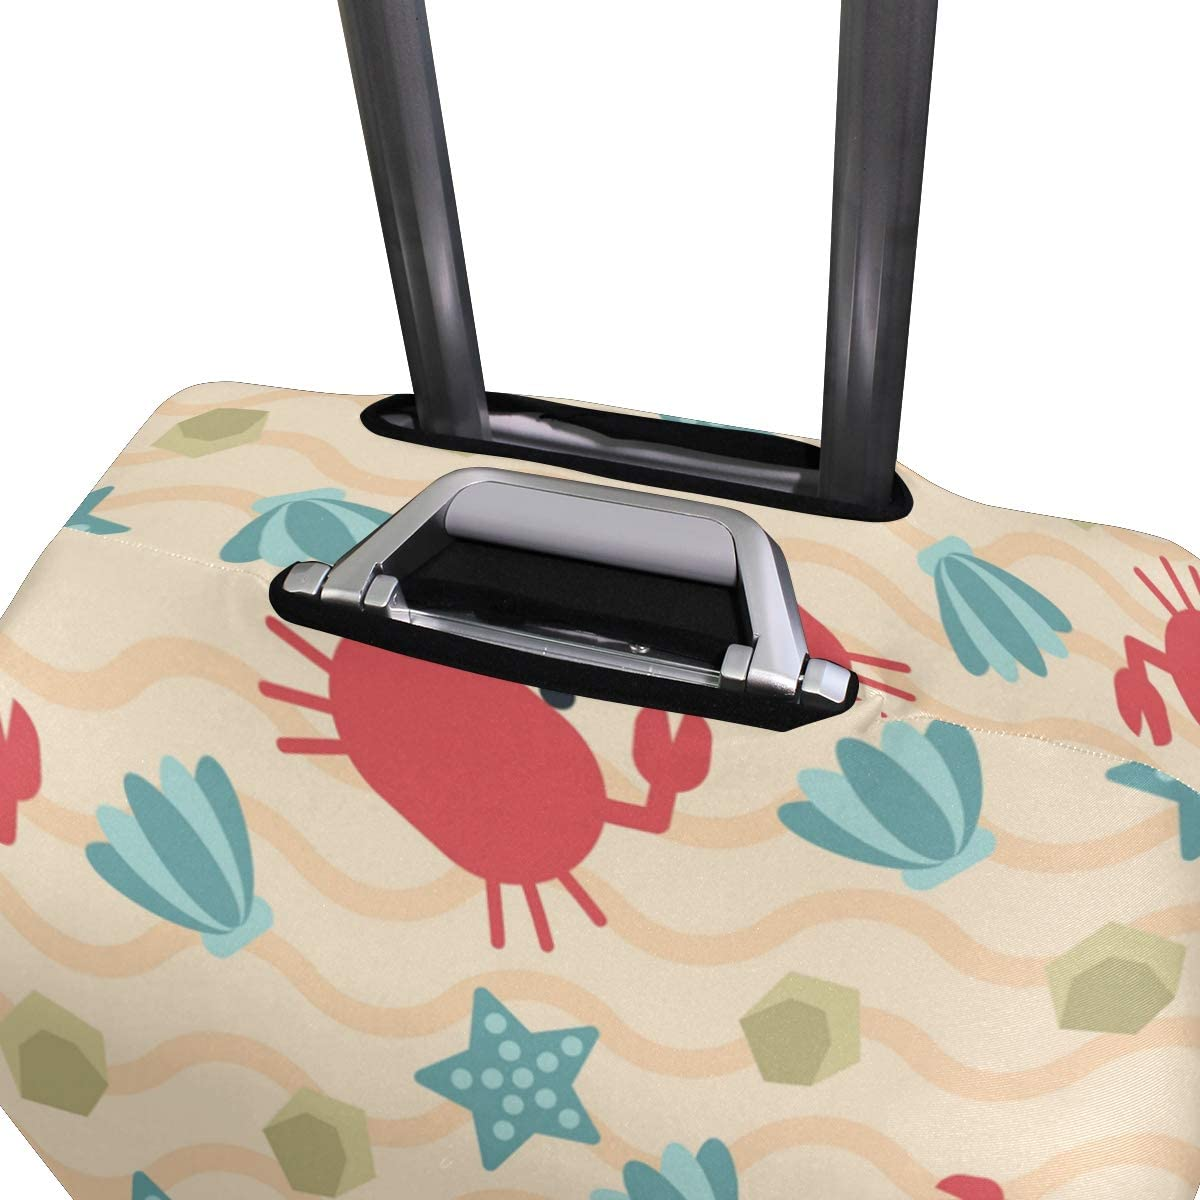 Nanmma Cute 3D Crab Pattern Luggage Protector Travel Luggage Cover Trolley Case Protective Cover Fits 18-32 Inch